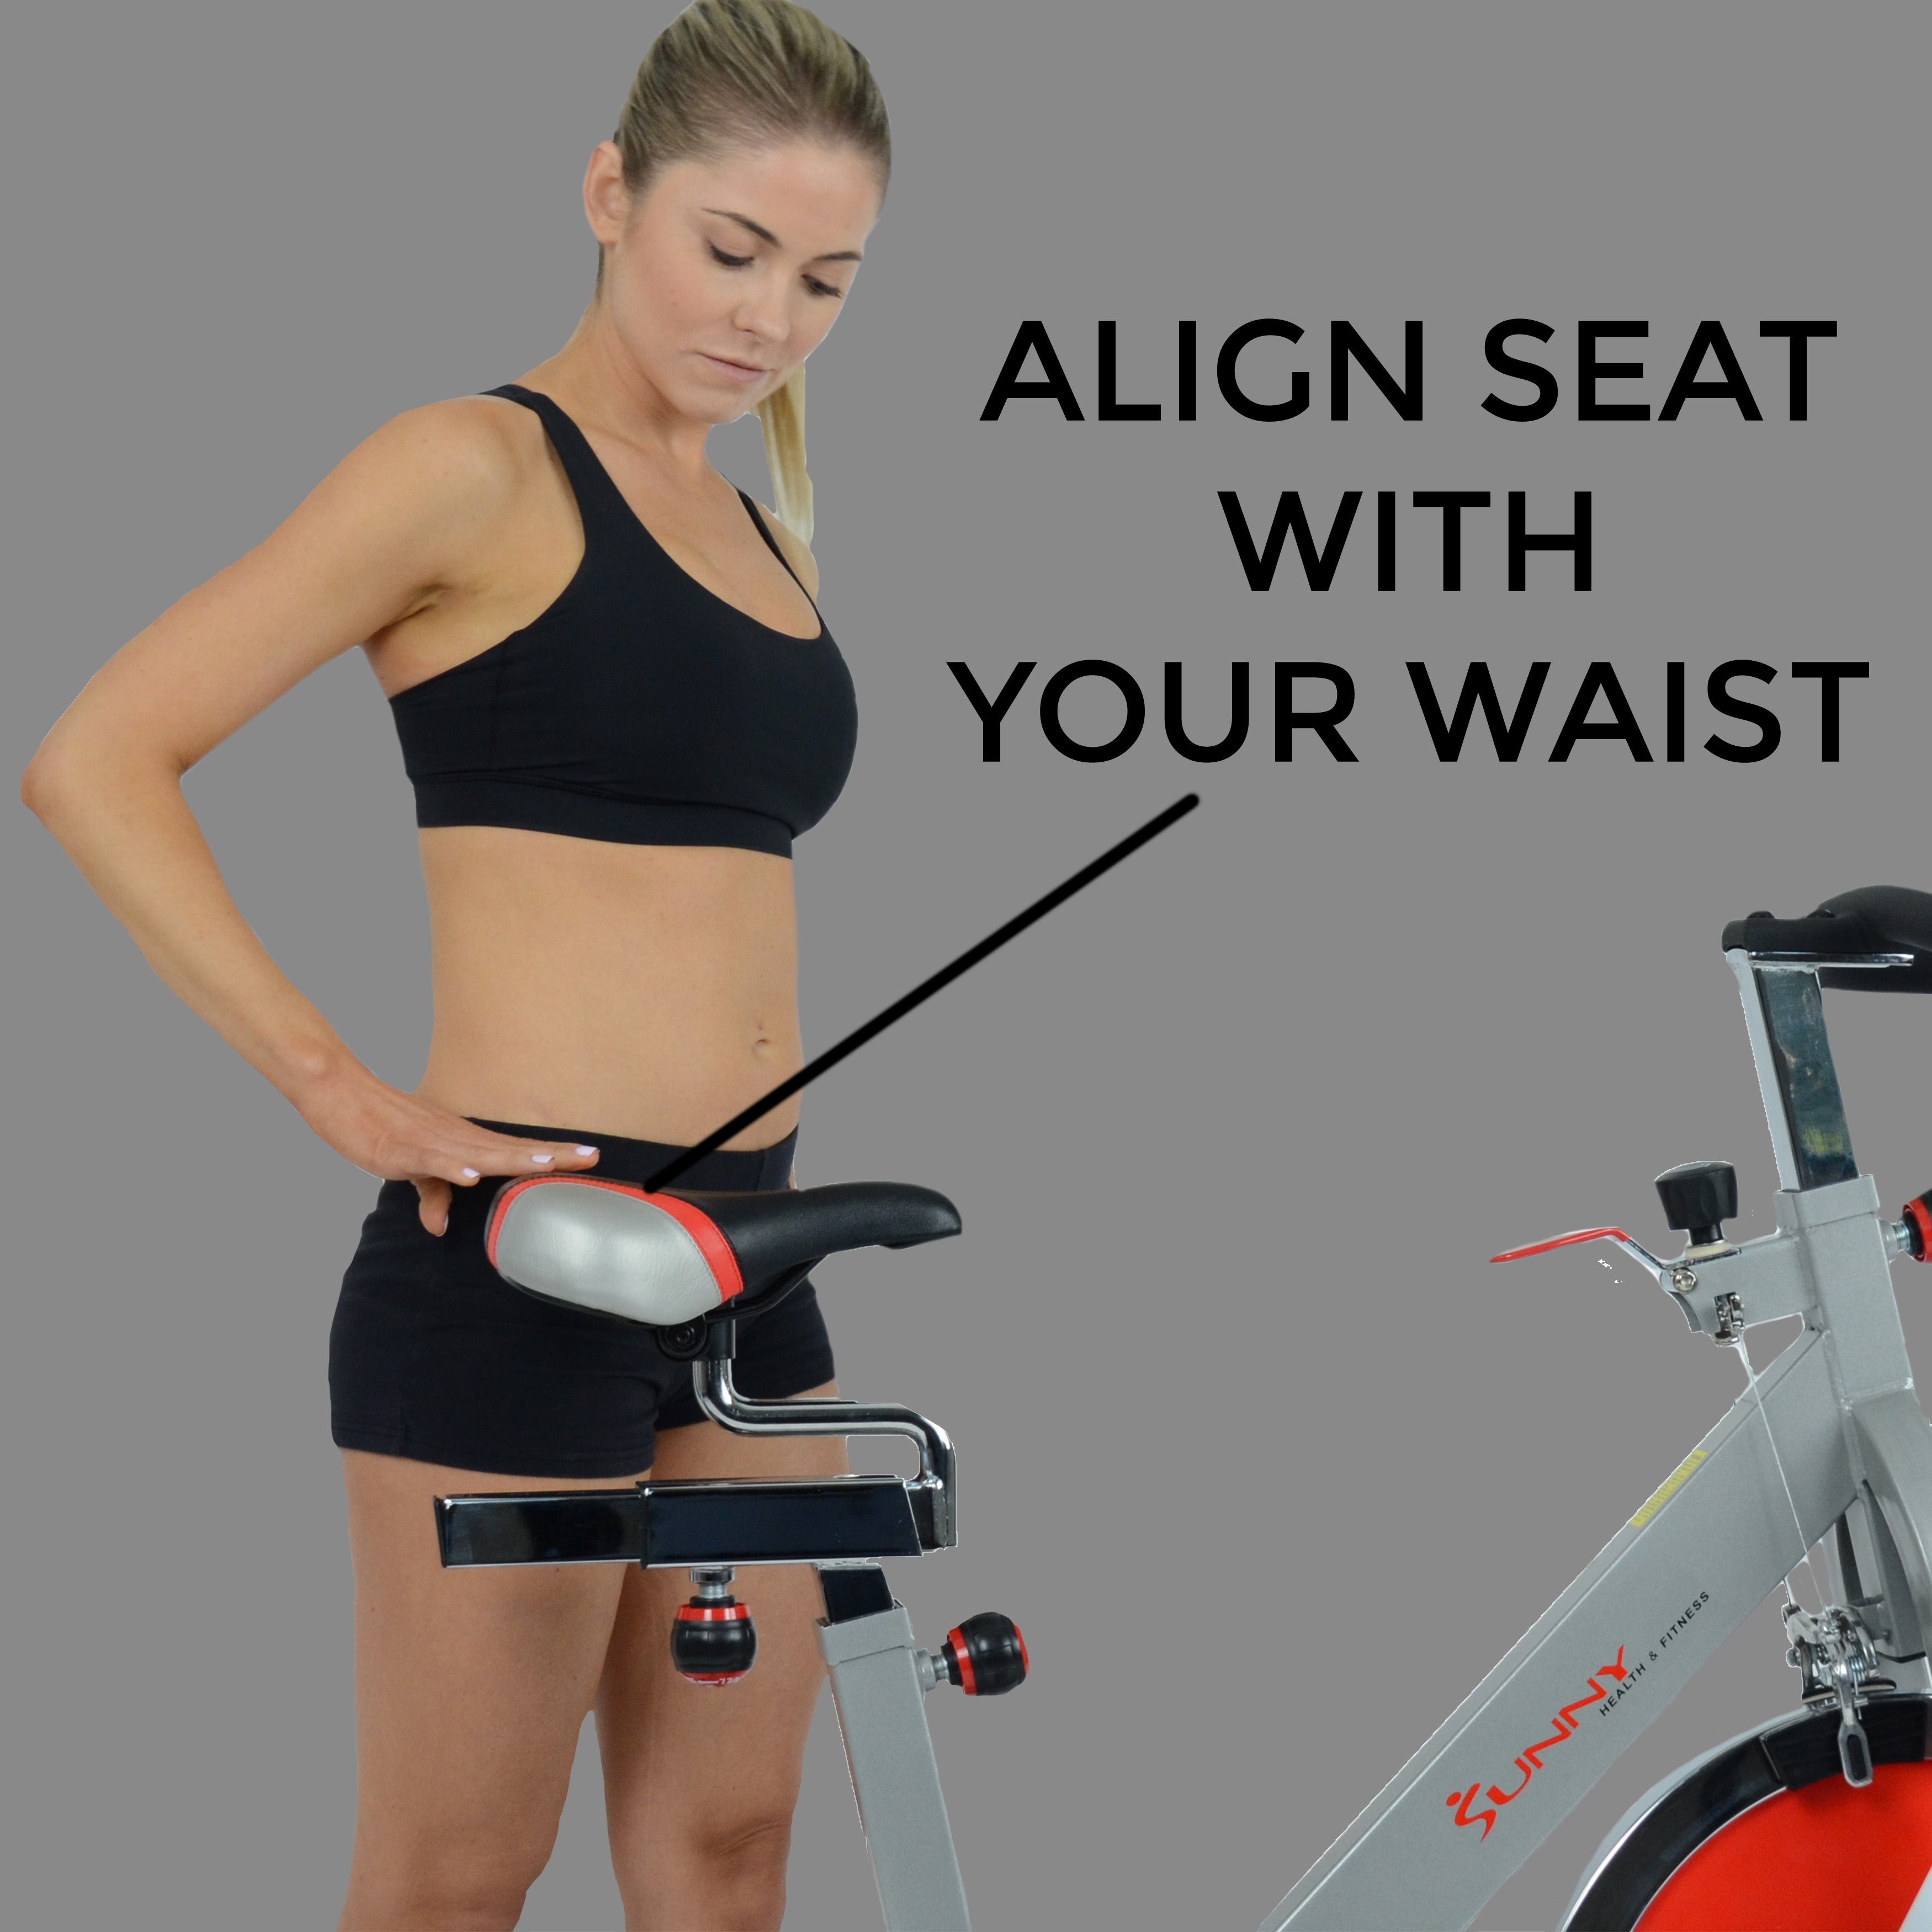 align seat with waist